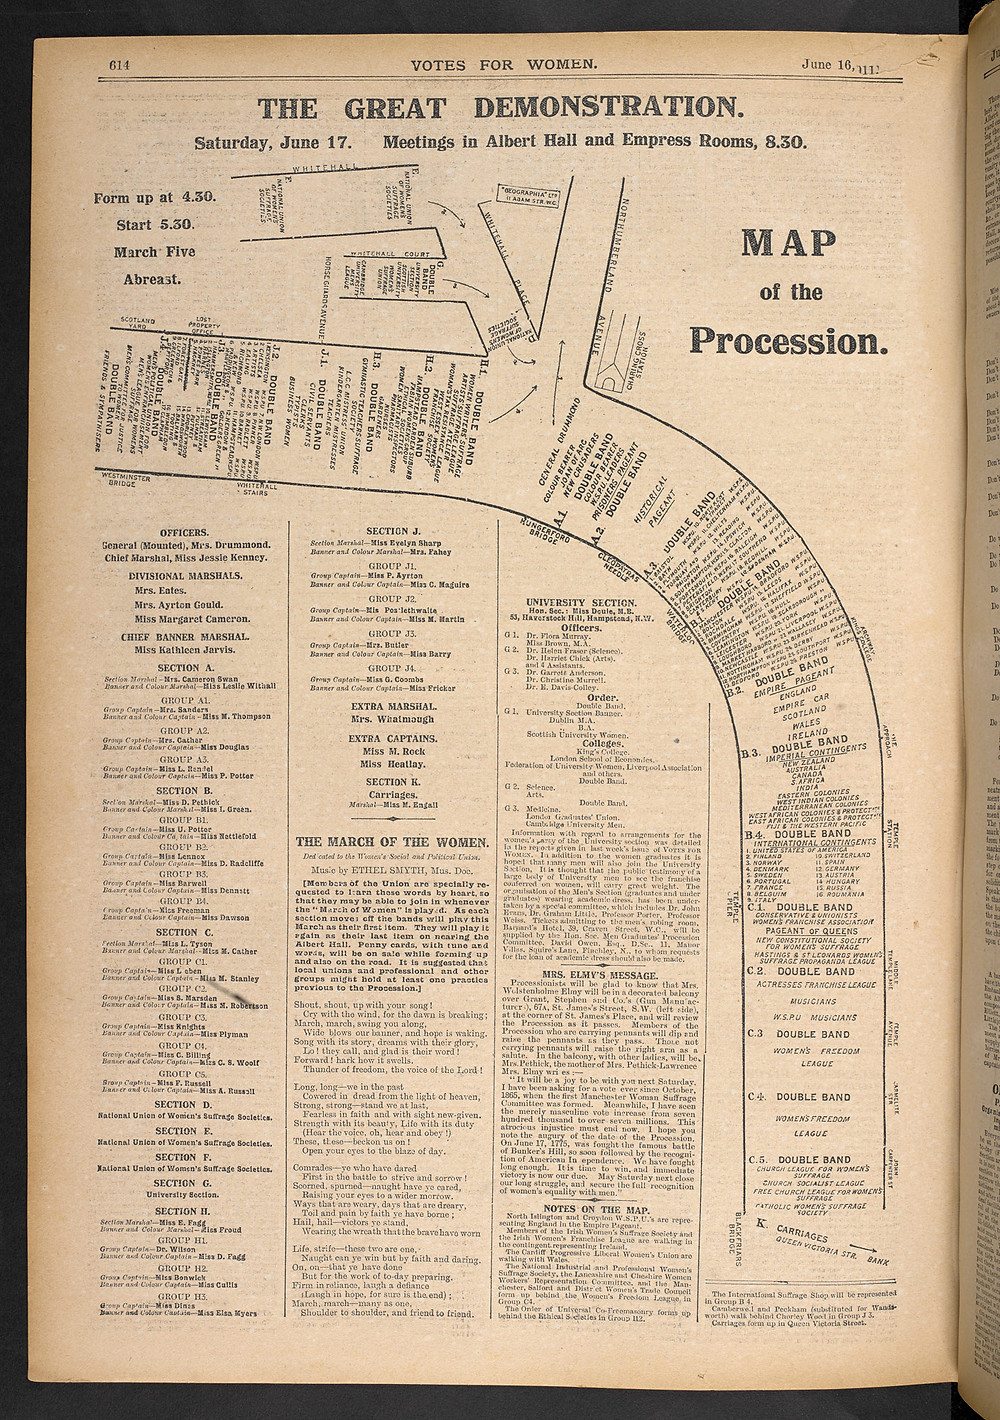 The Great Procession map demonstrates the scale and planning of the procession. Source: The British Library.